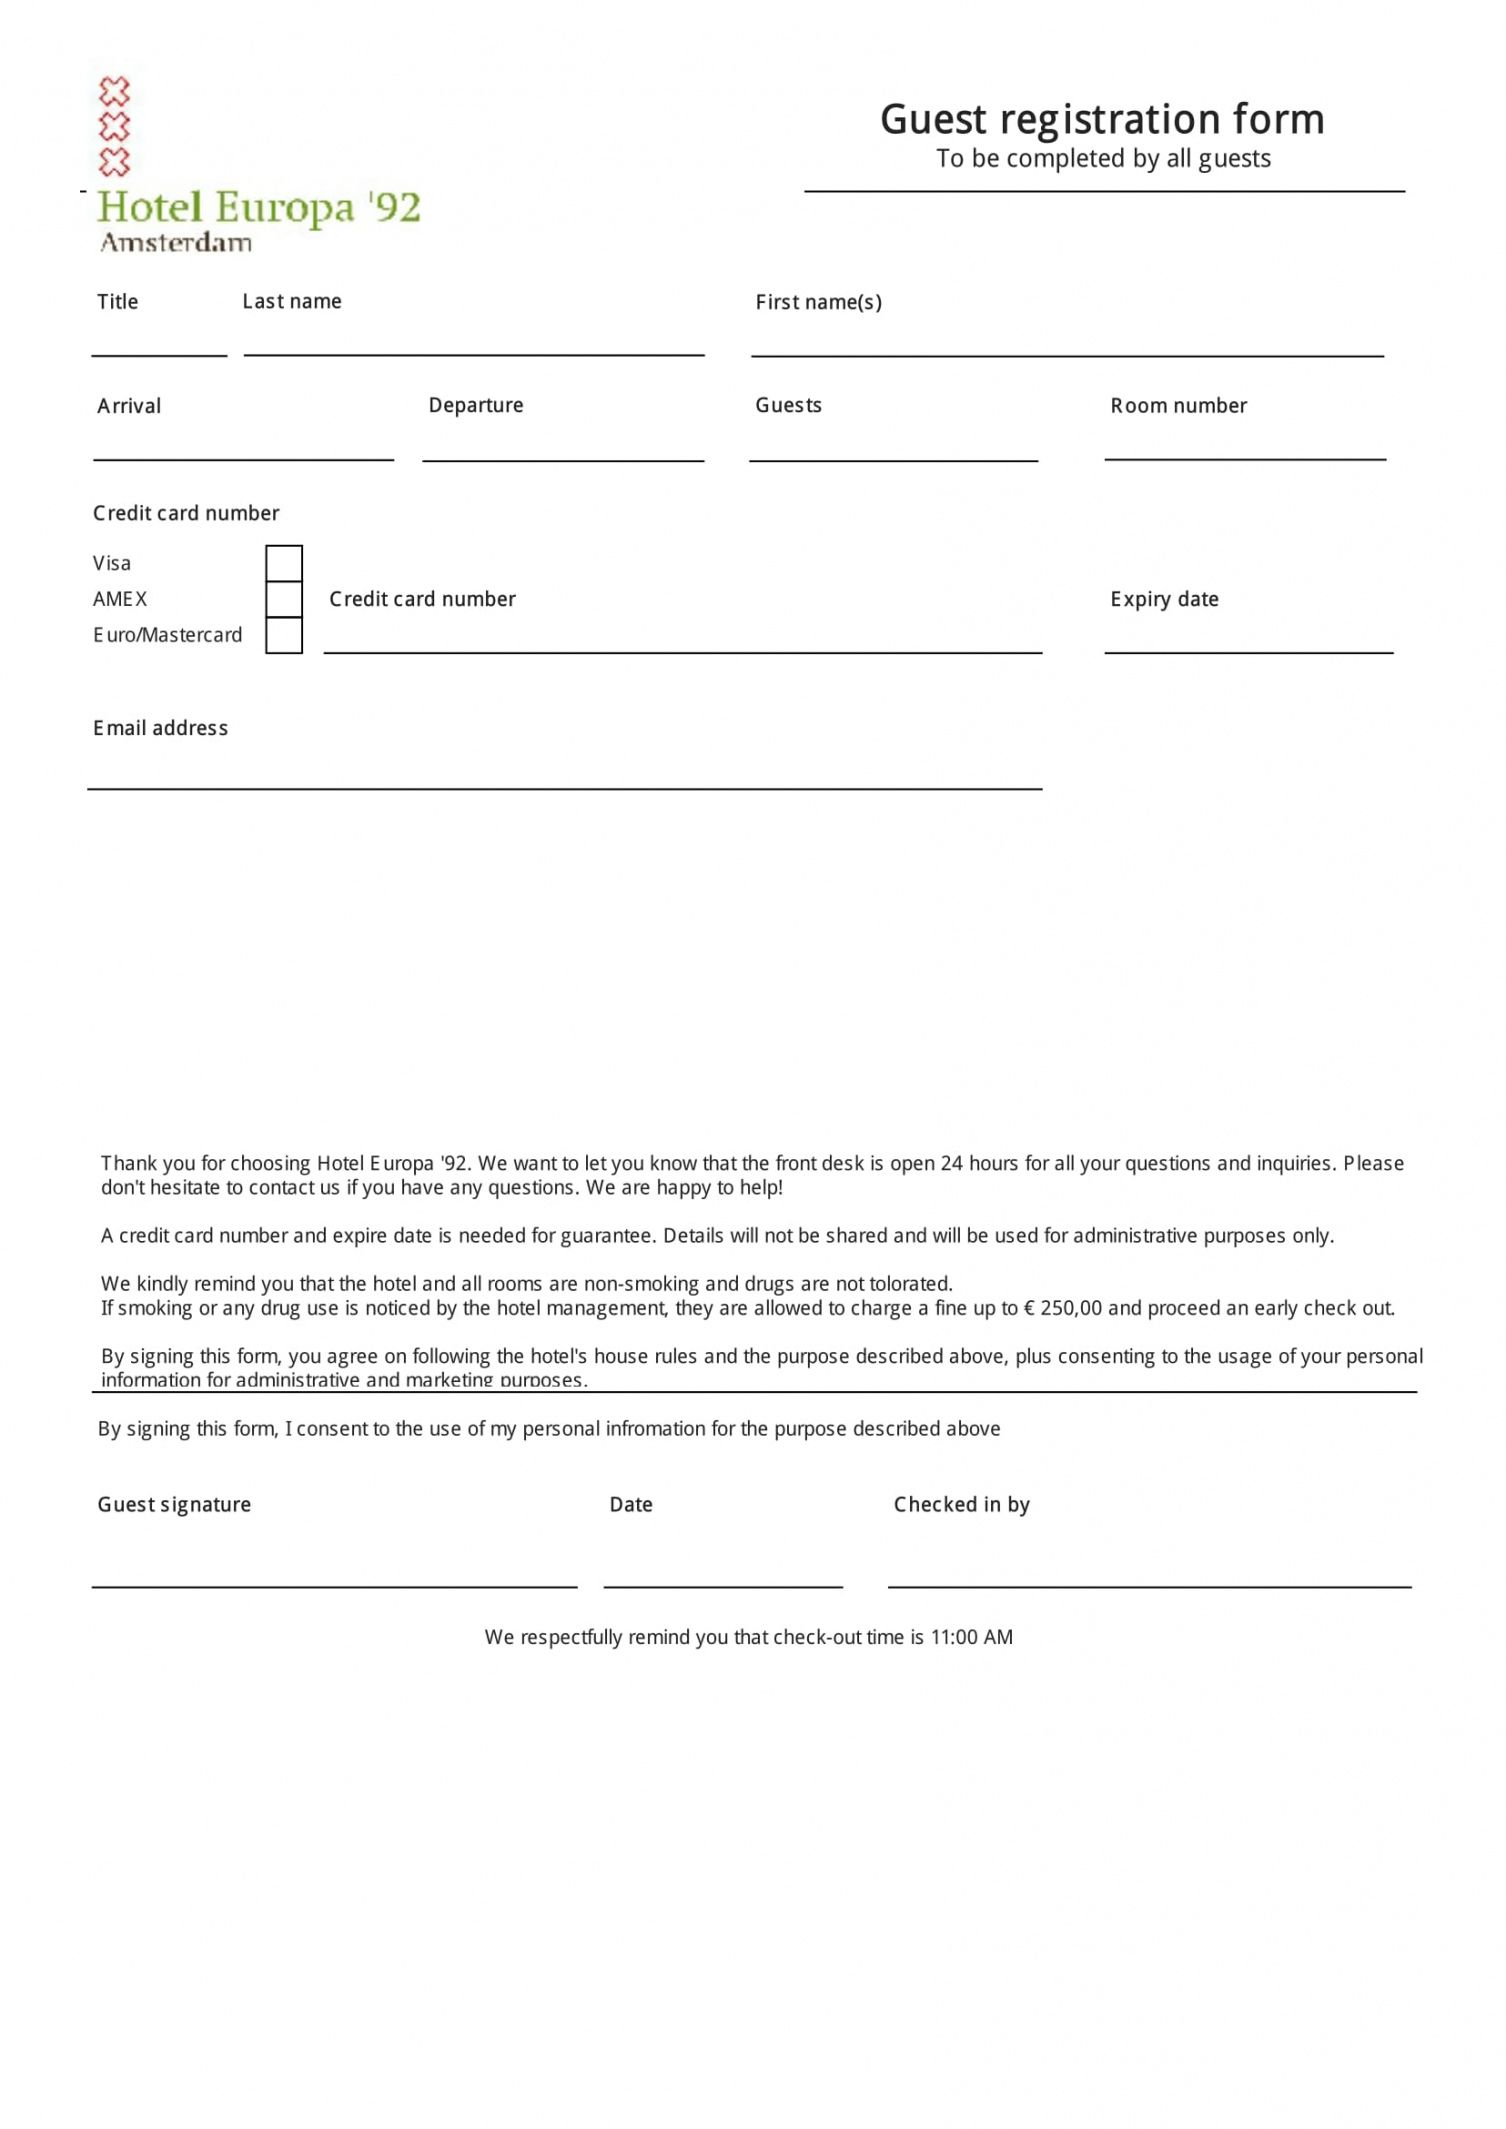 editable free 11 registration forms  patient registration form hotel guest registration form template doc